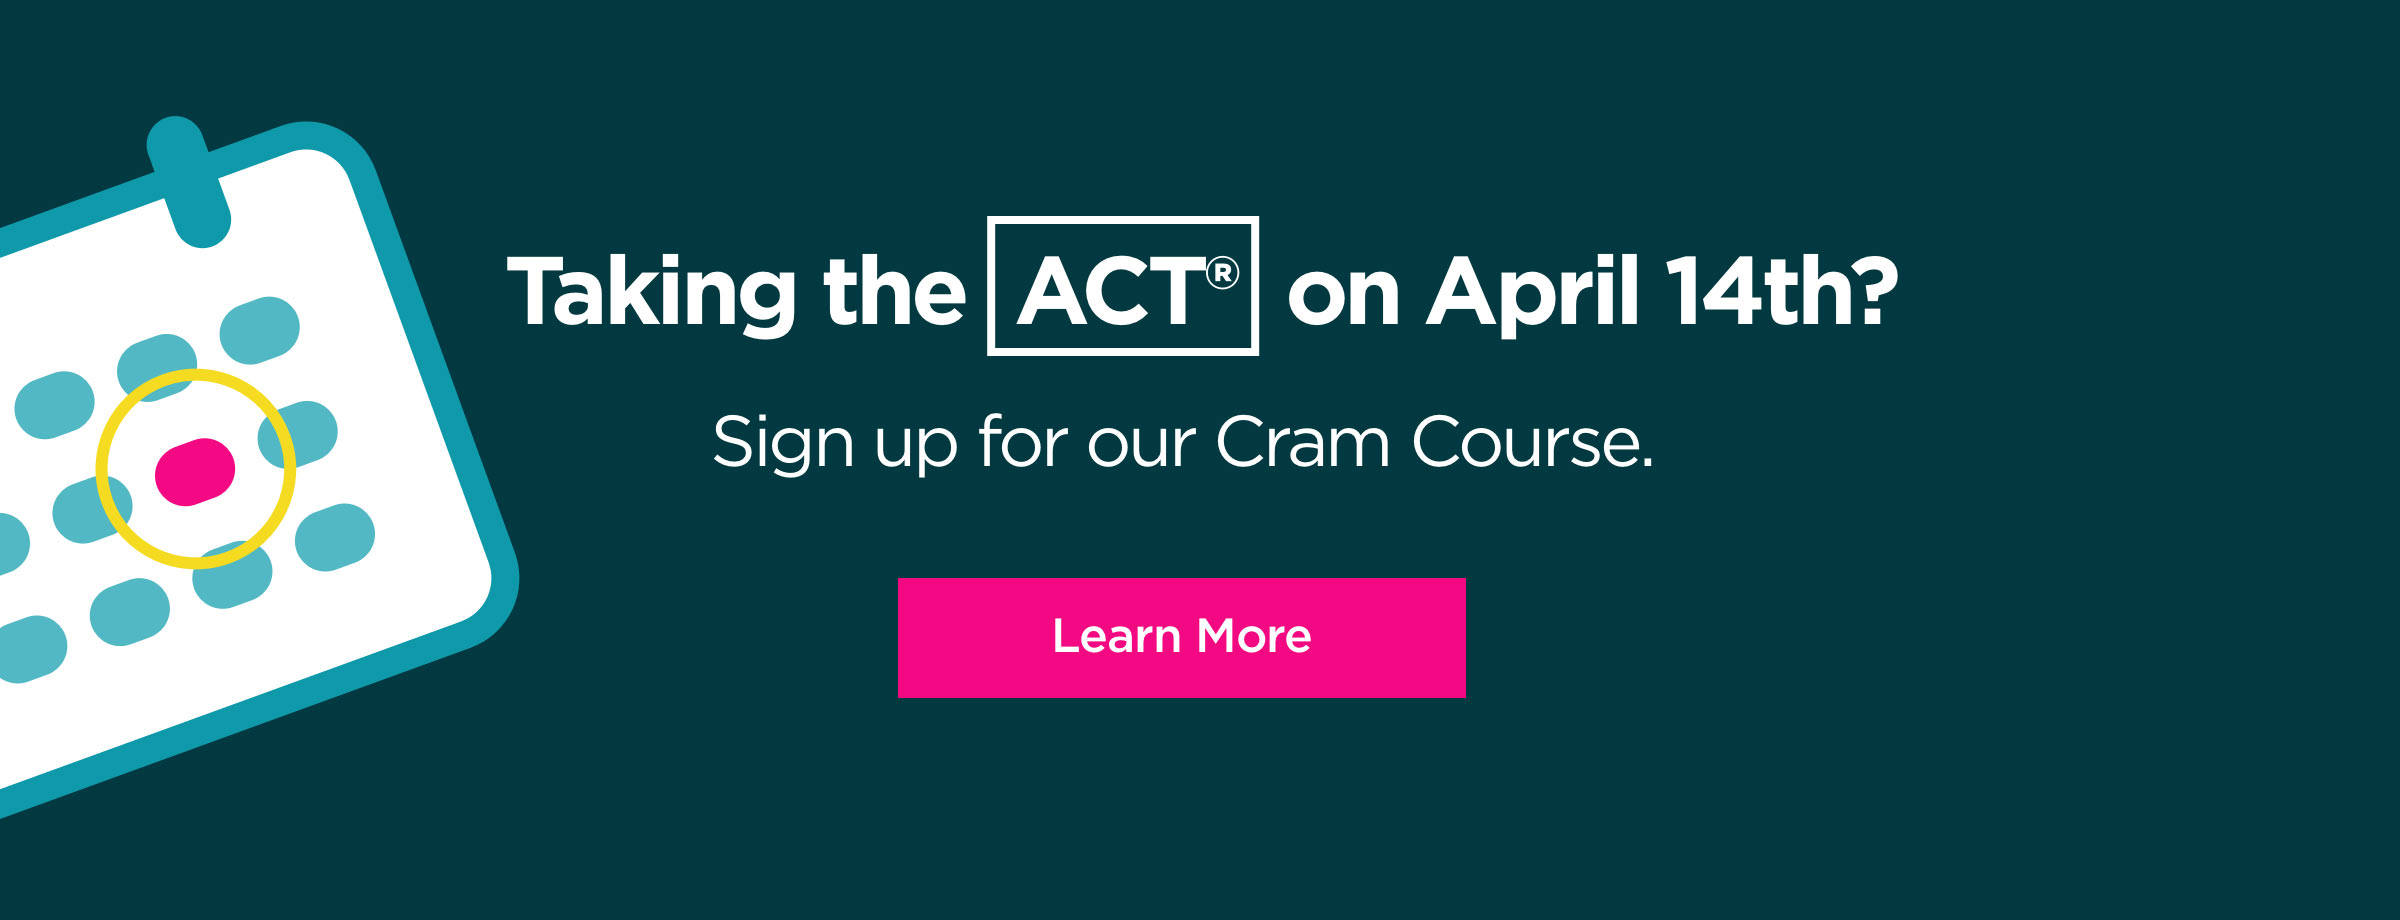 ACT Cram Course